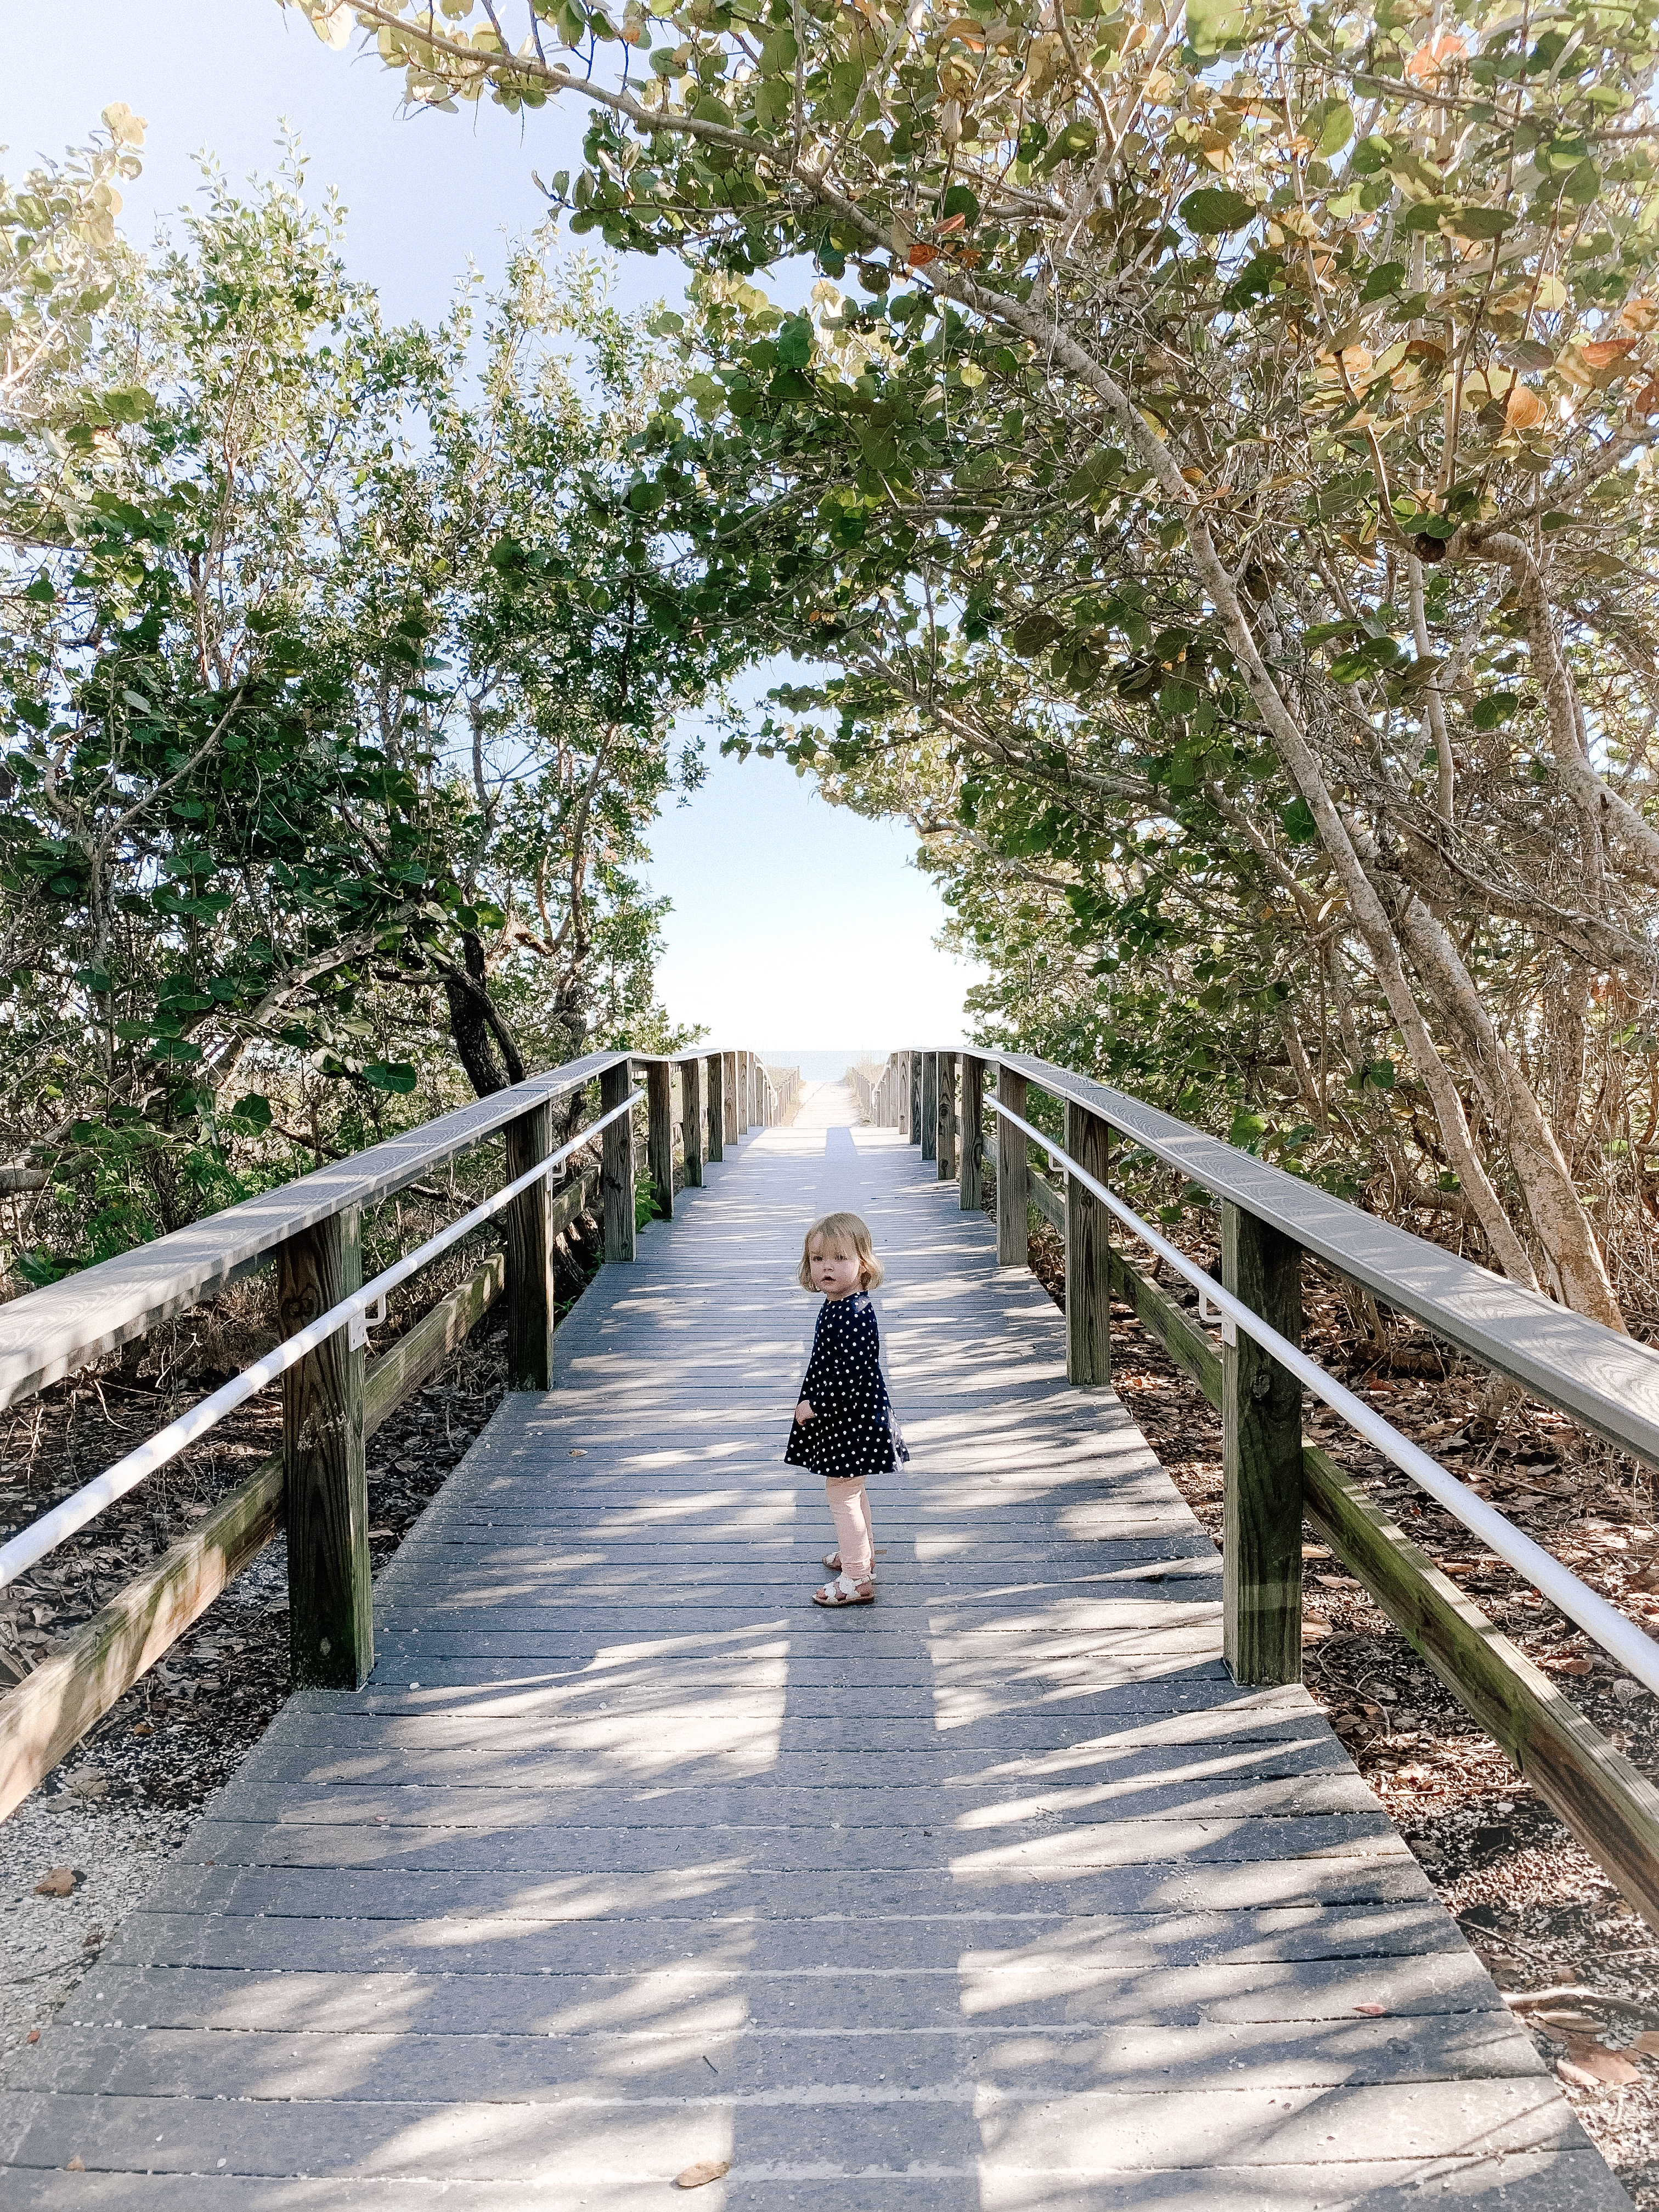 Things To Do in Captiva